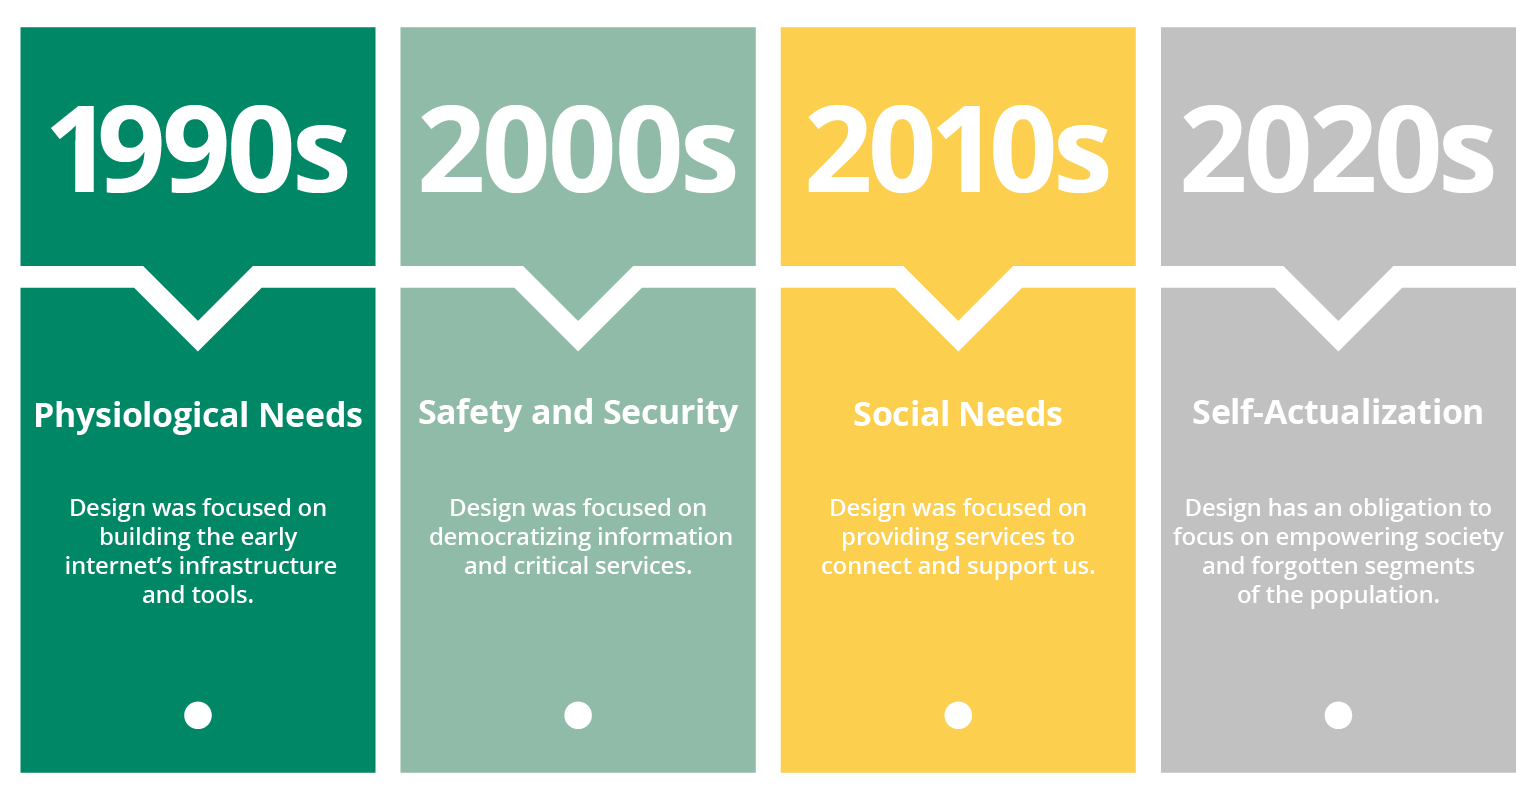 Timeline displaying design changes by decade. 1990: Physiological Needs; 2000: Safety and Security; 2010: Social Needs; 2020: Self-Actualization.